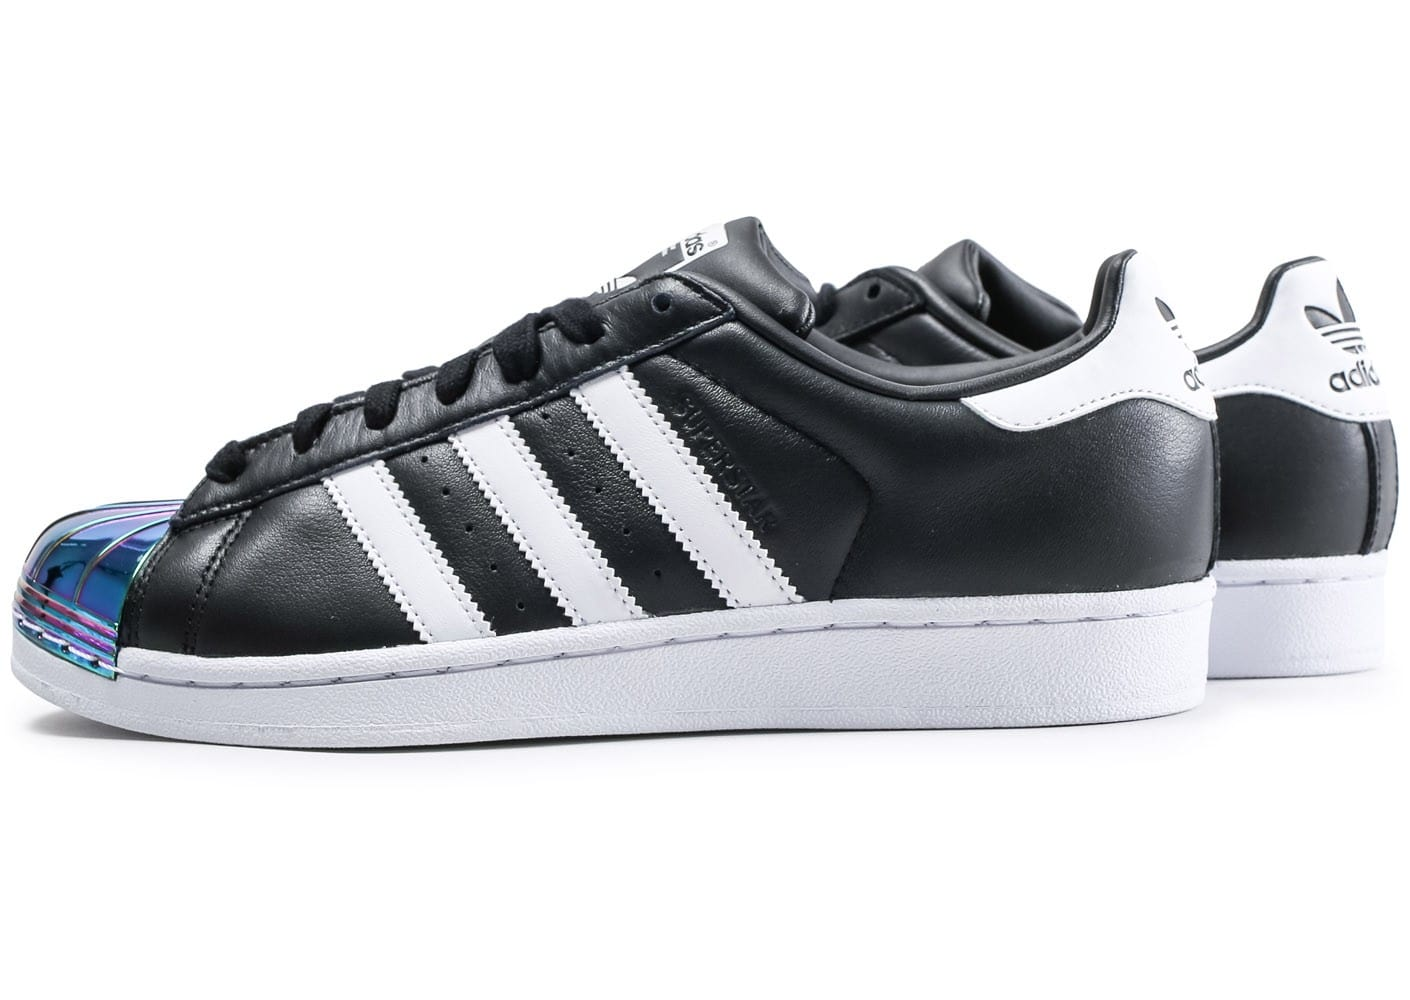 adidas superstar noir et metal